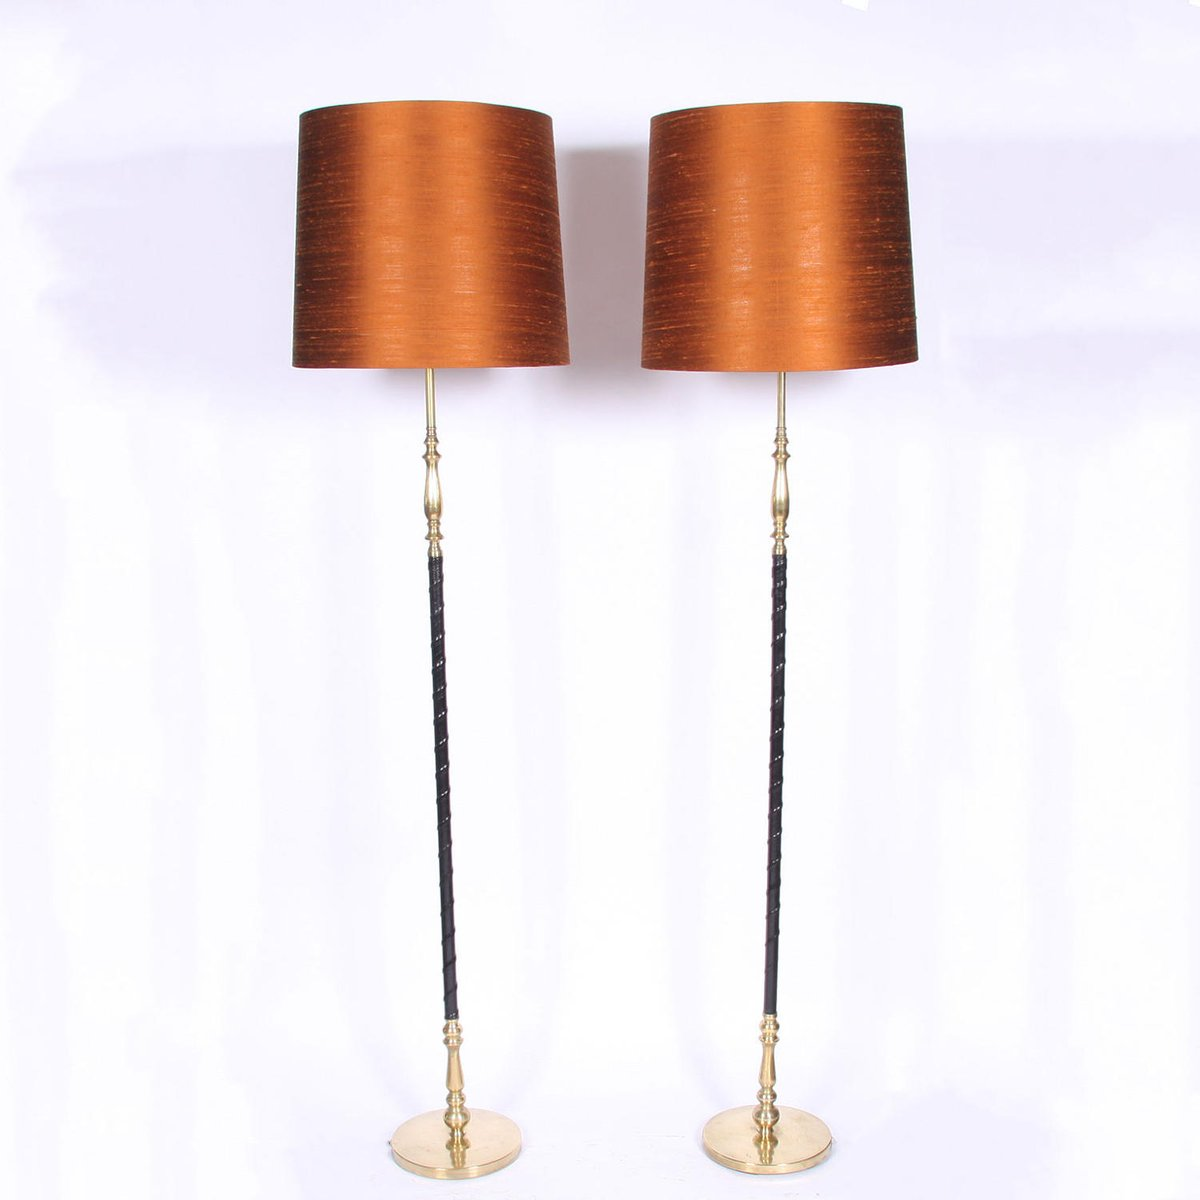 Leather and Brass Floor Lamps, 1960s, Set of 2